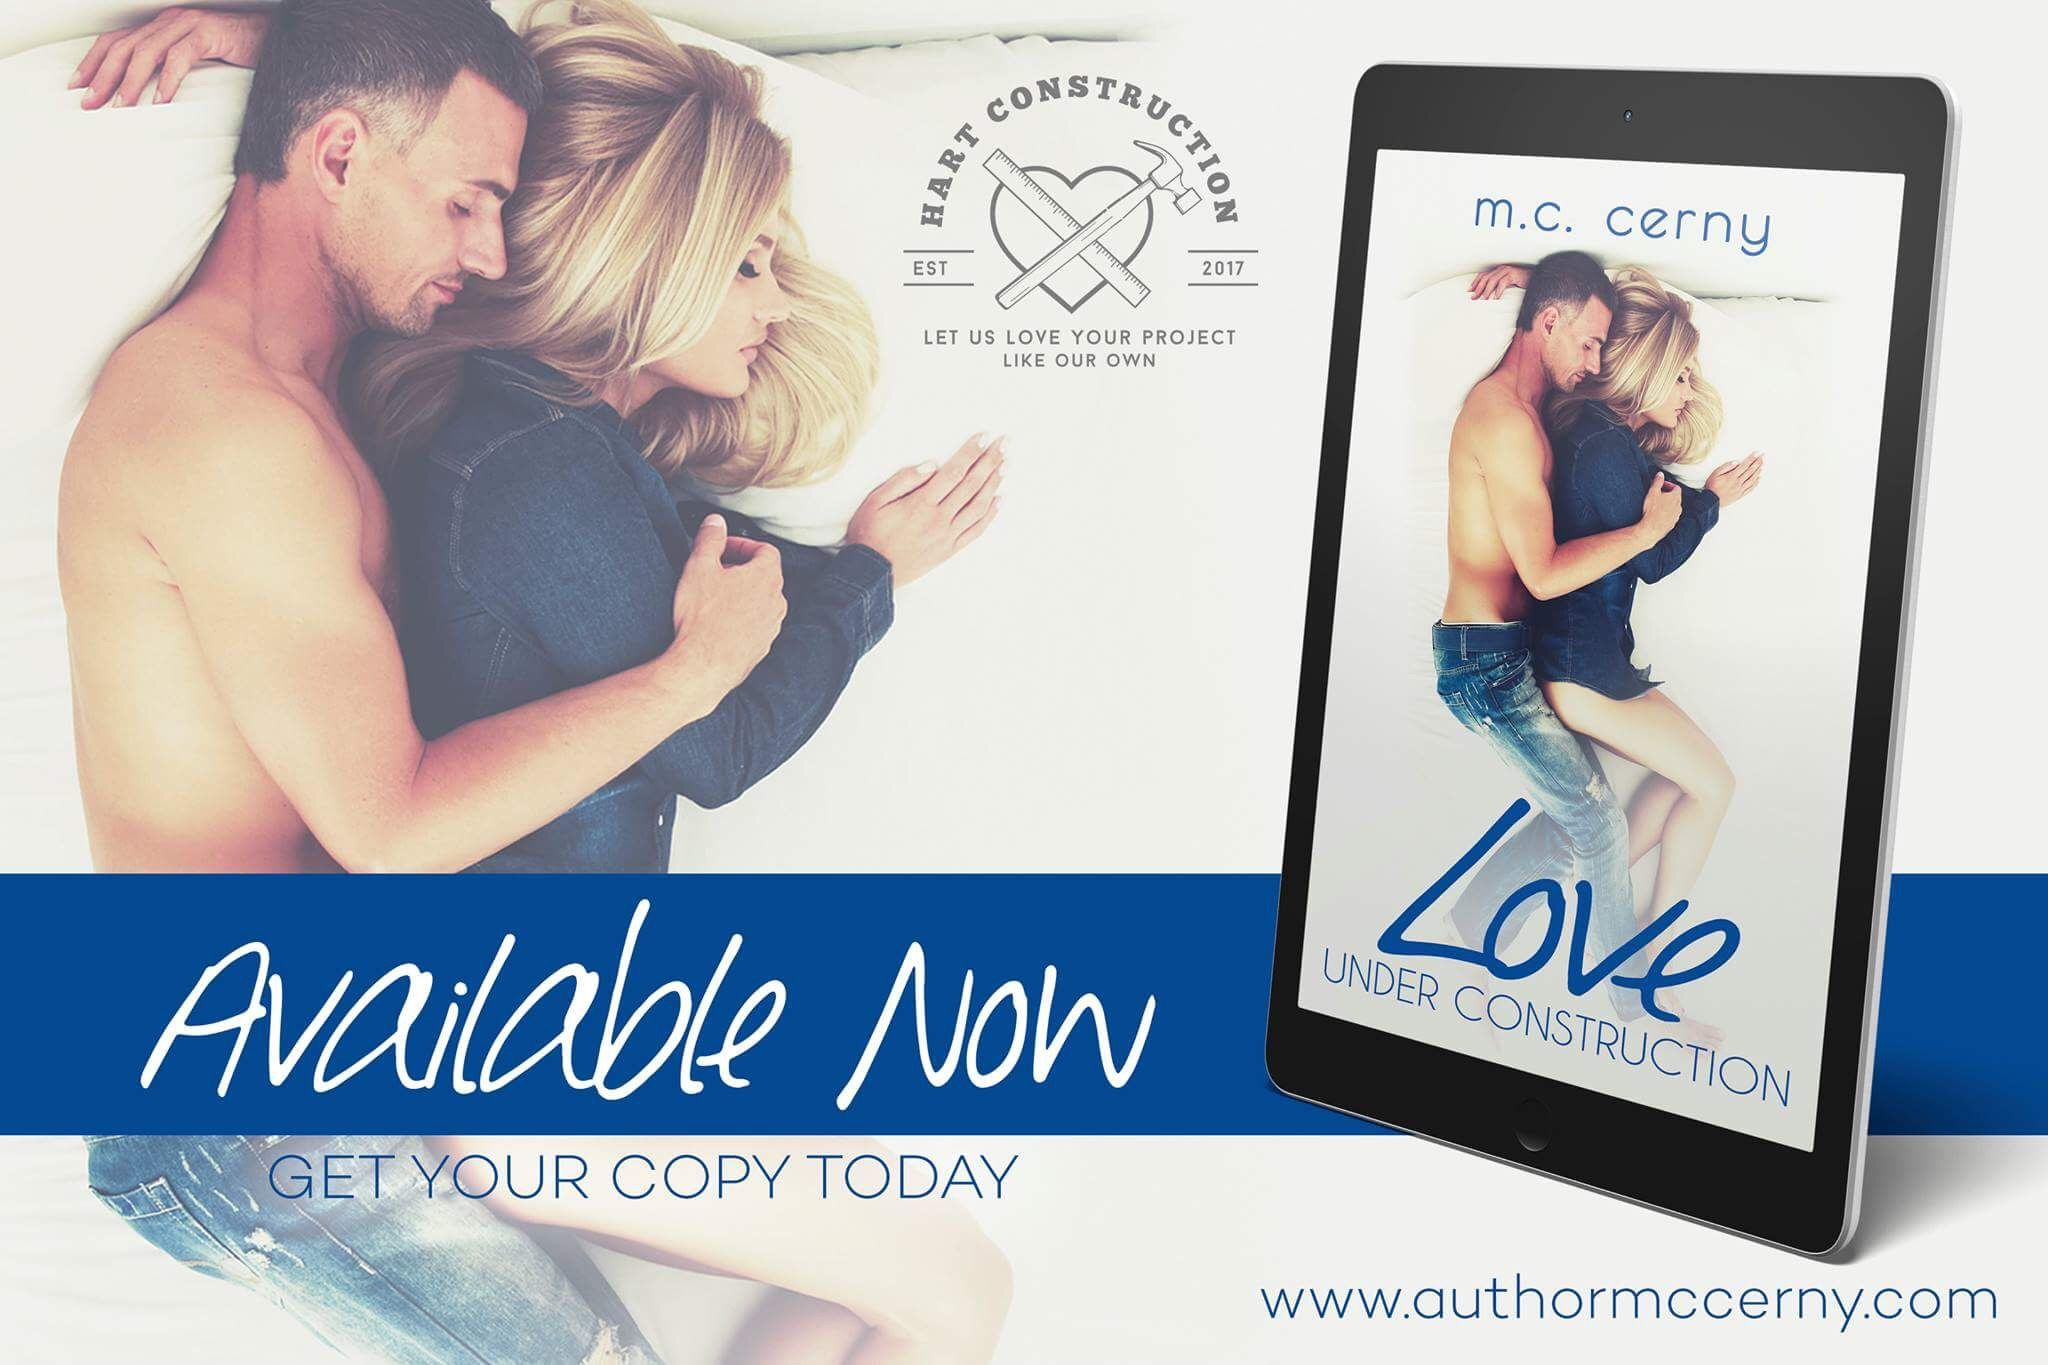 Love Under Construction is live on all platforms.   Amazon: http://amzn.to/2hUKrHq Universal Link: books2read.com/u/bMGlG7 iBooks: http://apple.co/2ixJvf9 Nook: http://bit.ly/2jwf3Av Kobo: http://bit.ly/2jkQPvr